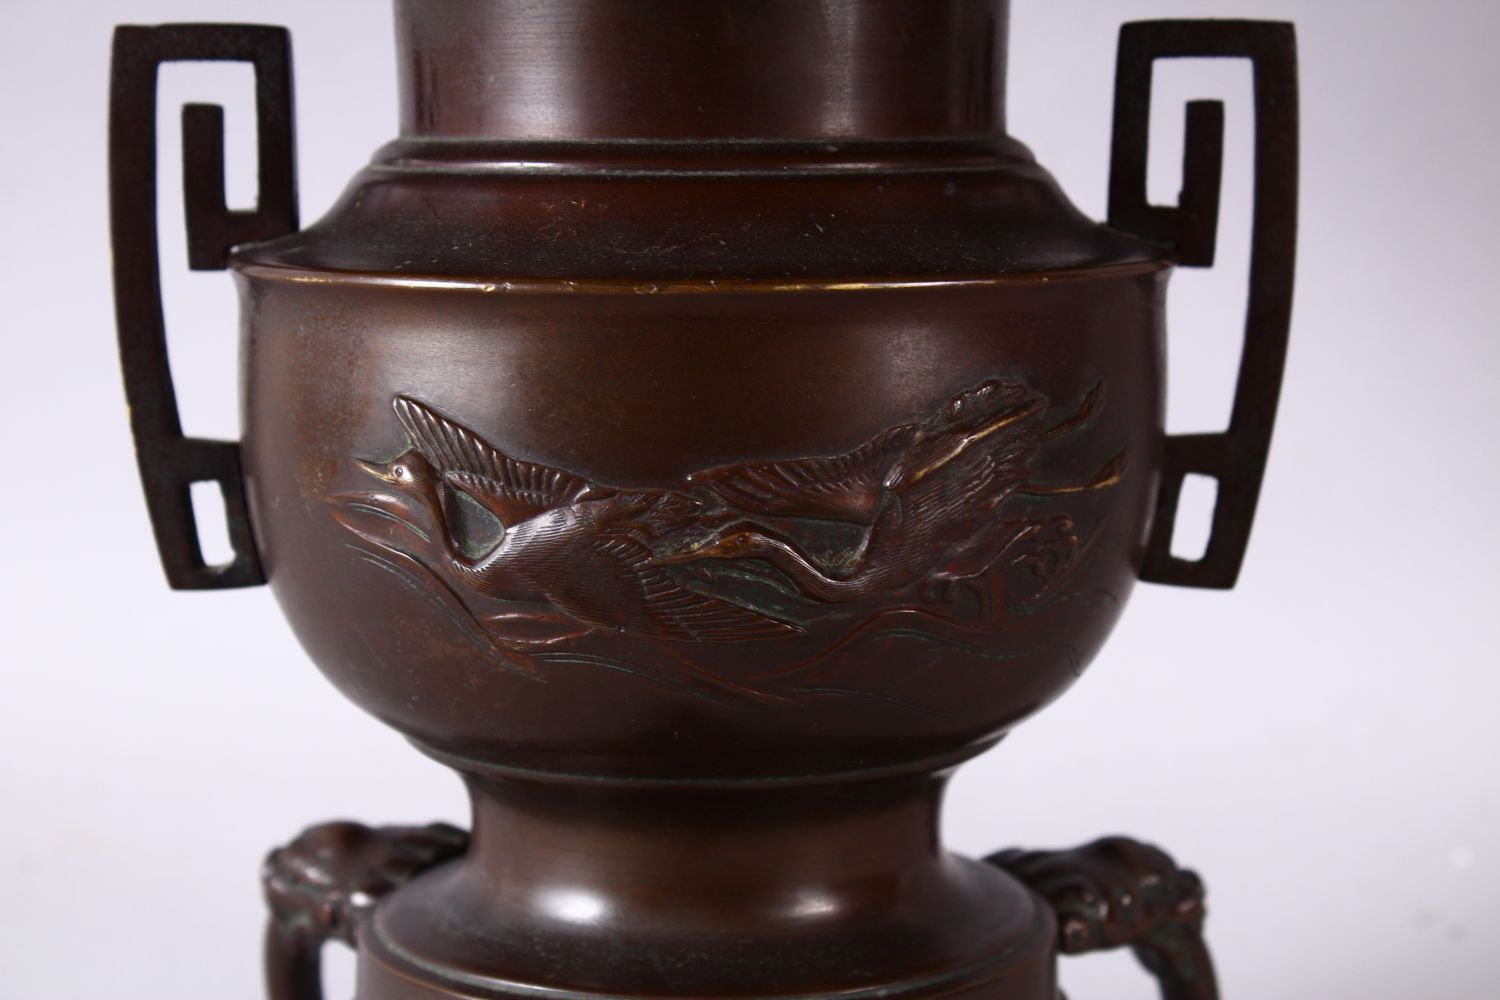 A 19TH CENTURY JAPANESE BRONZE TWO HANDLED VASE on three curving legs, with large circular top - Image 2 of 6